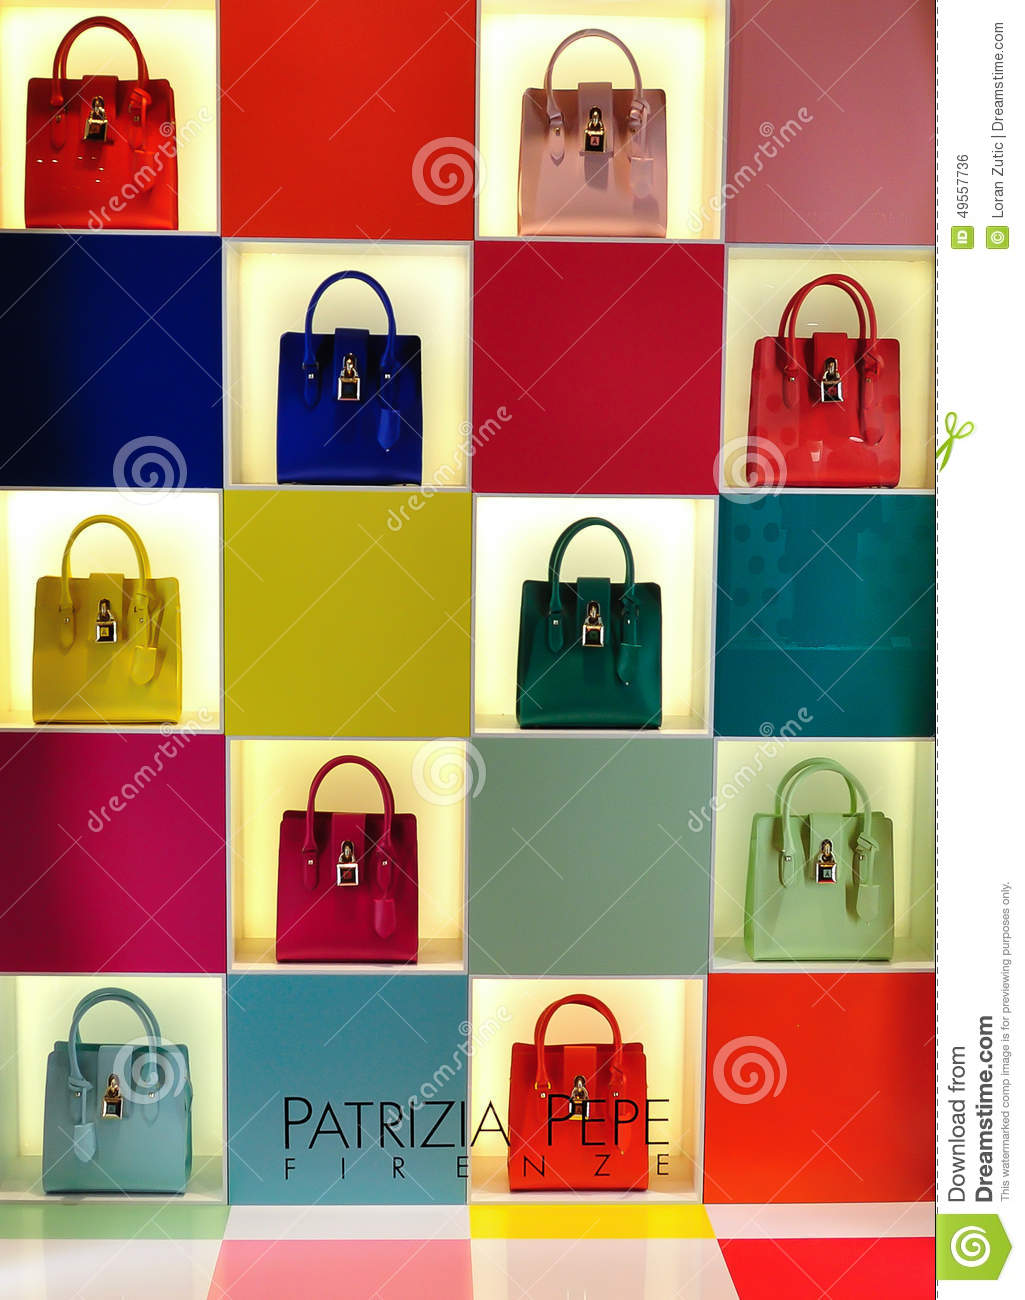 Patrizia Pepe Women Bags Shop Window Editorial Photo - Image: 49557736